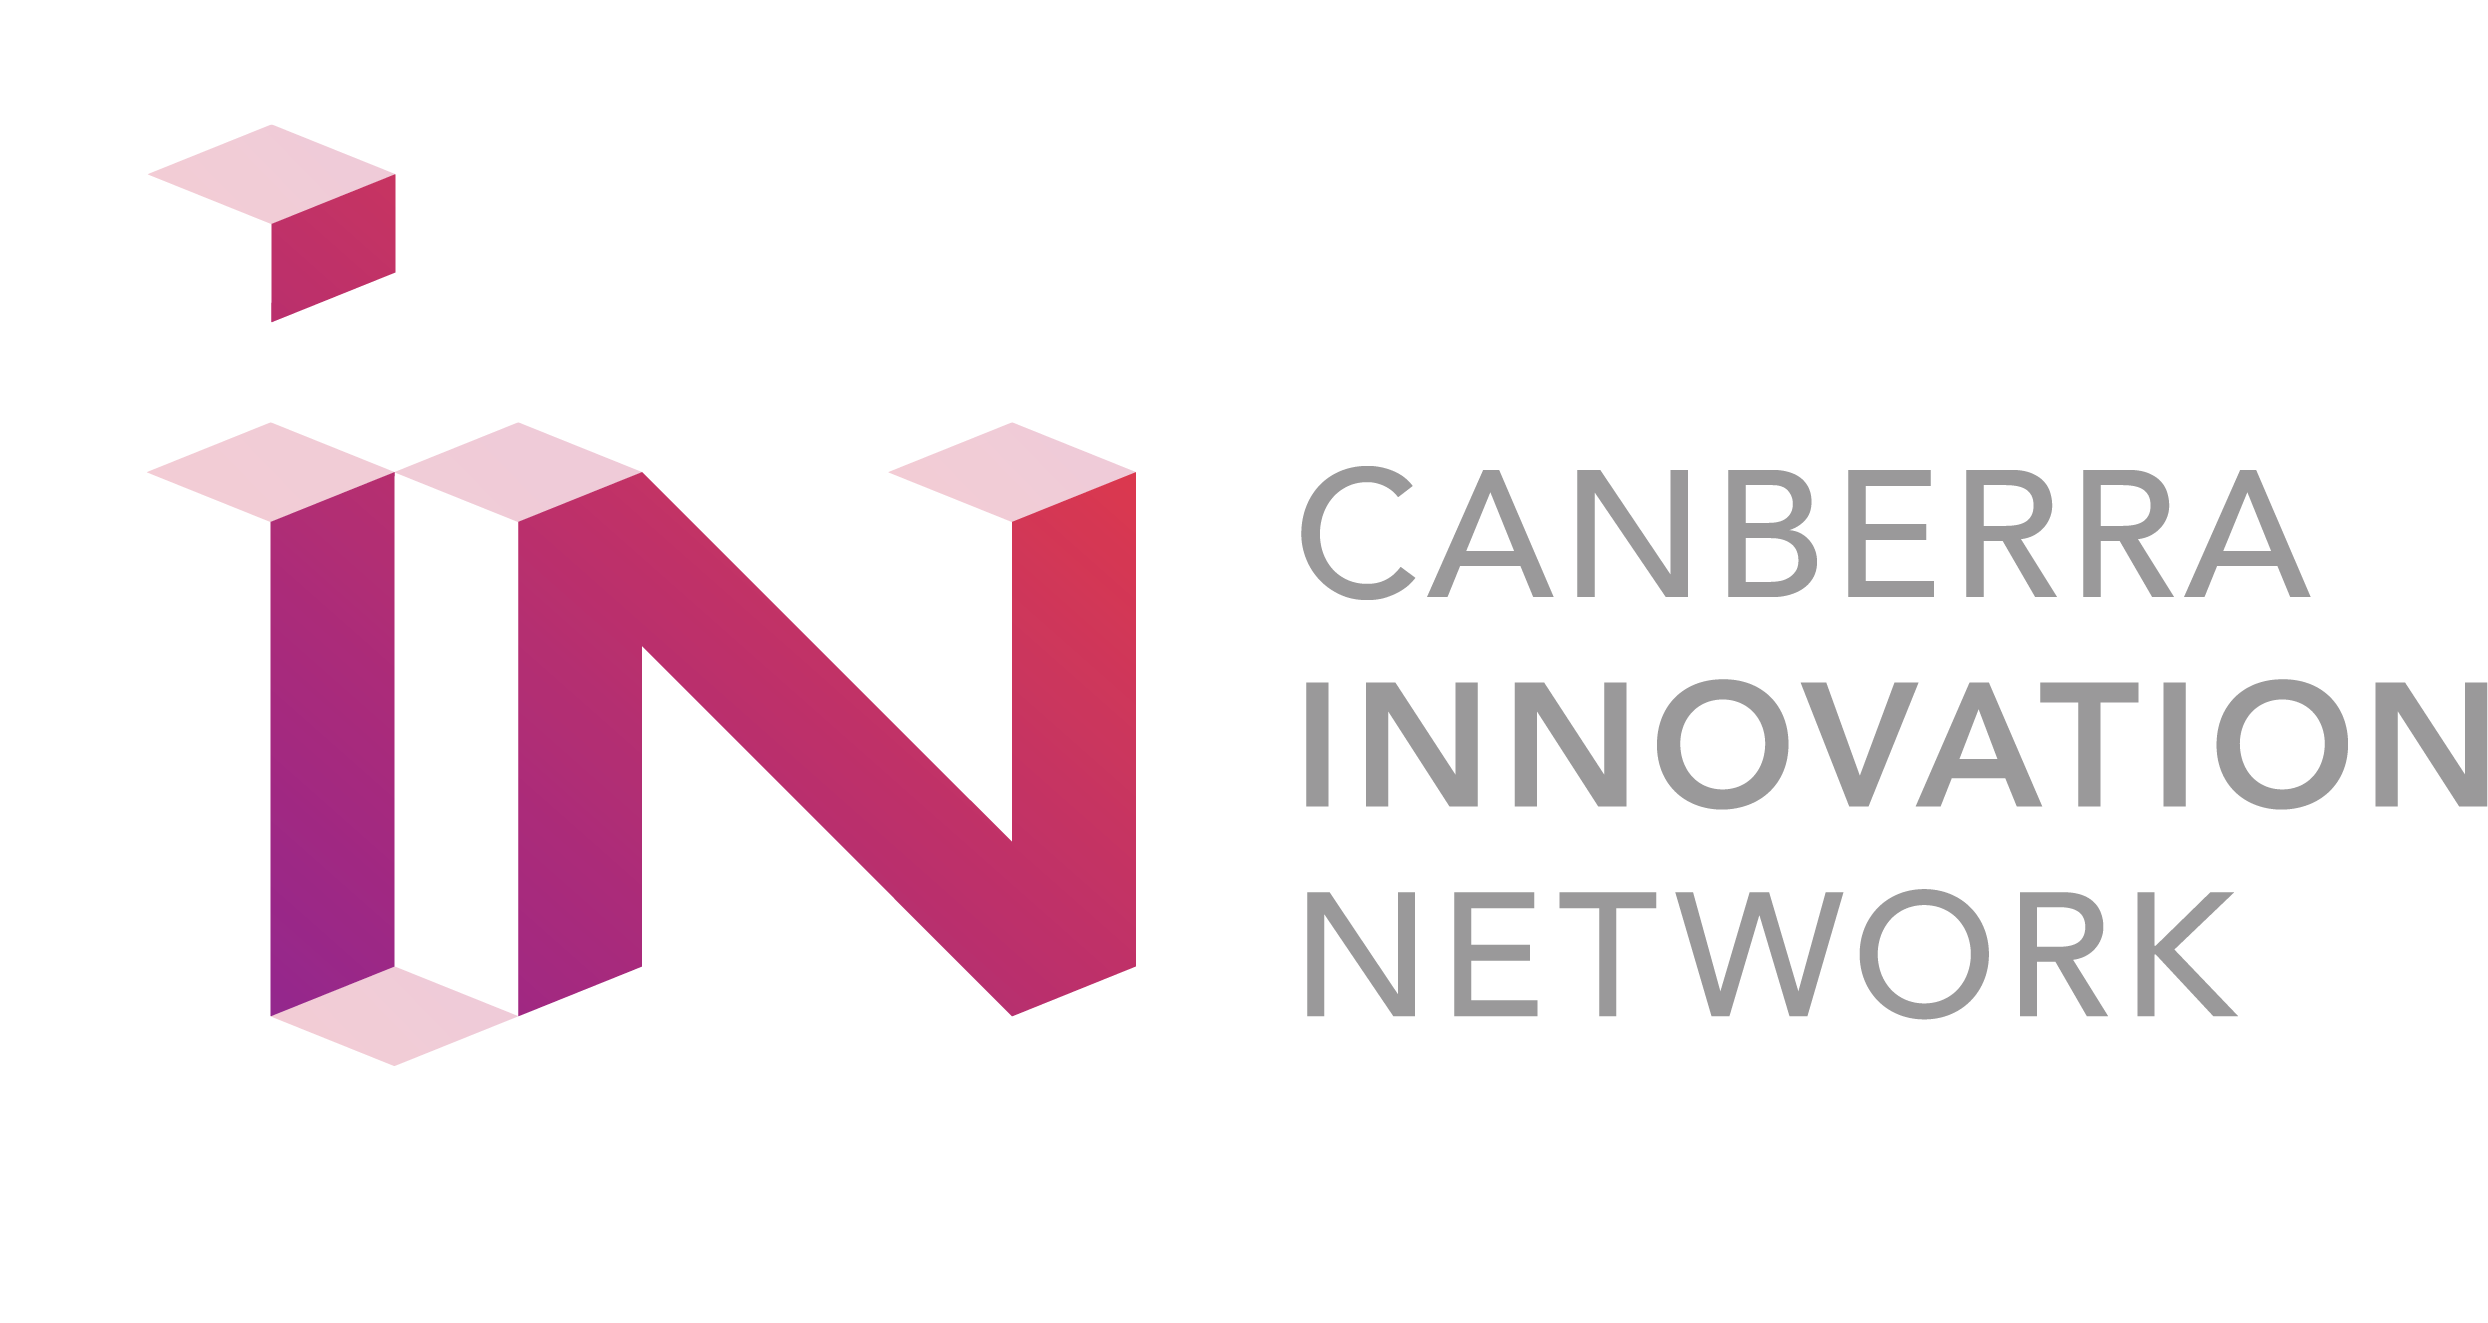 Canberra Innovation Network